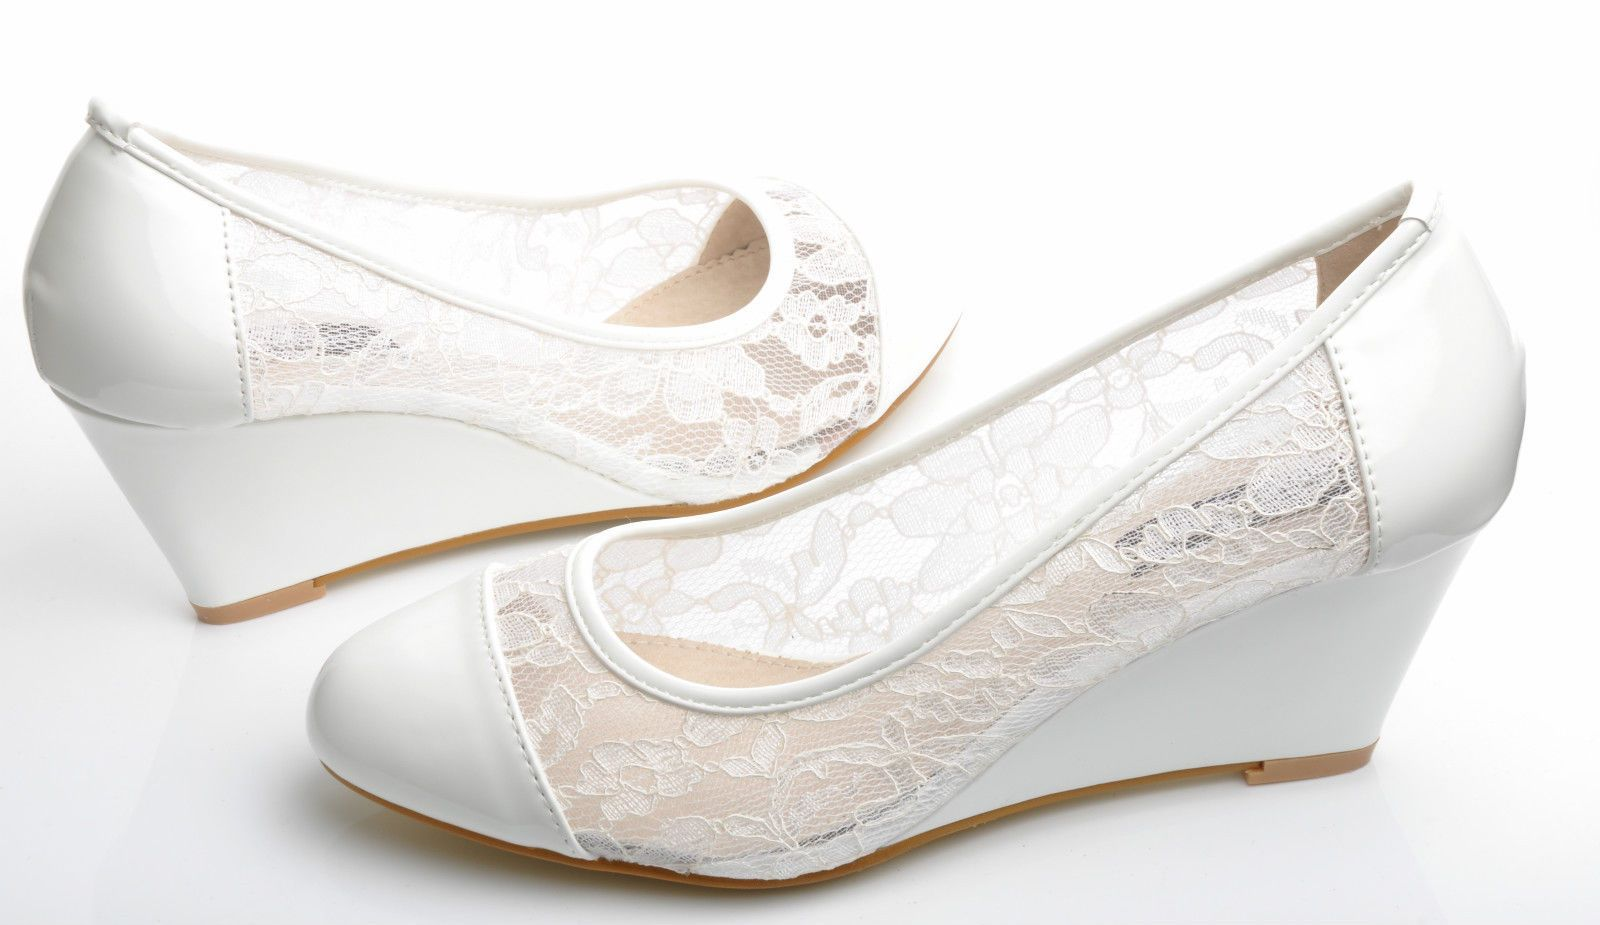 New off white floral lace mid heel wedge shoes wedding